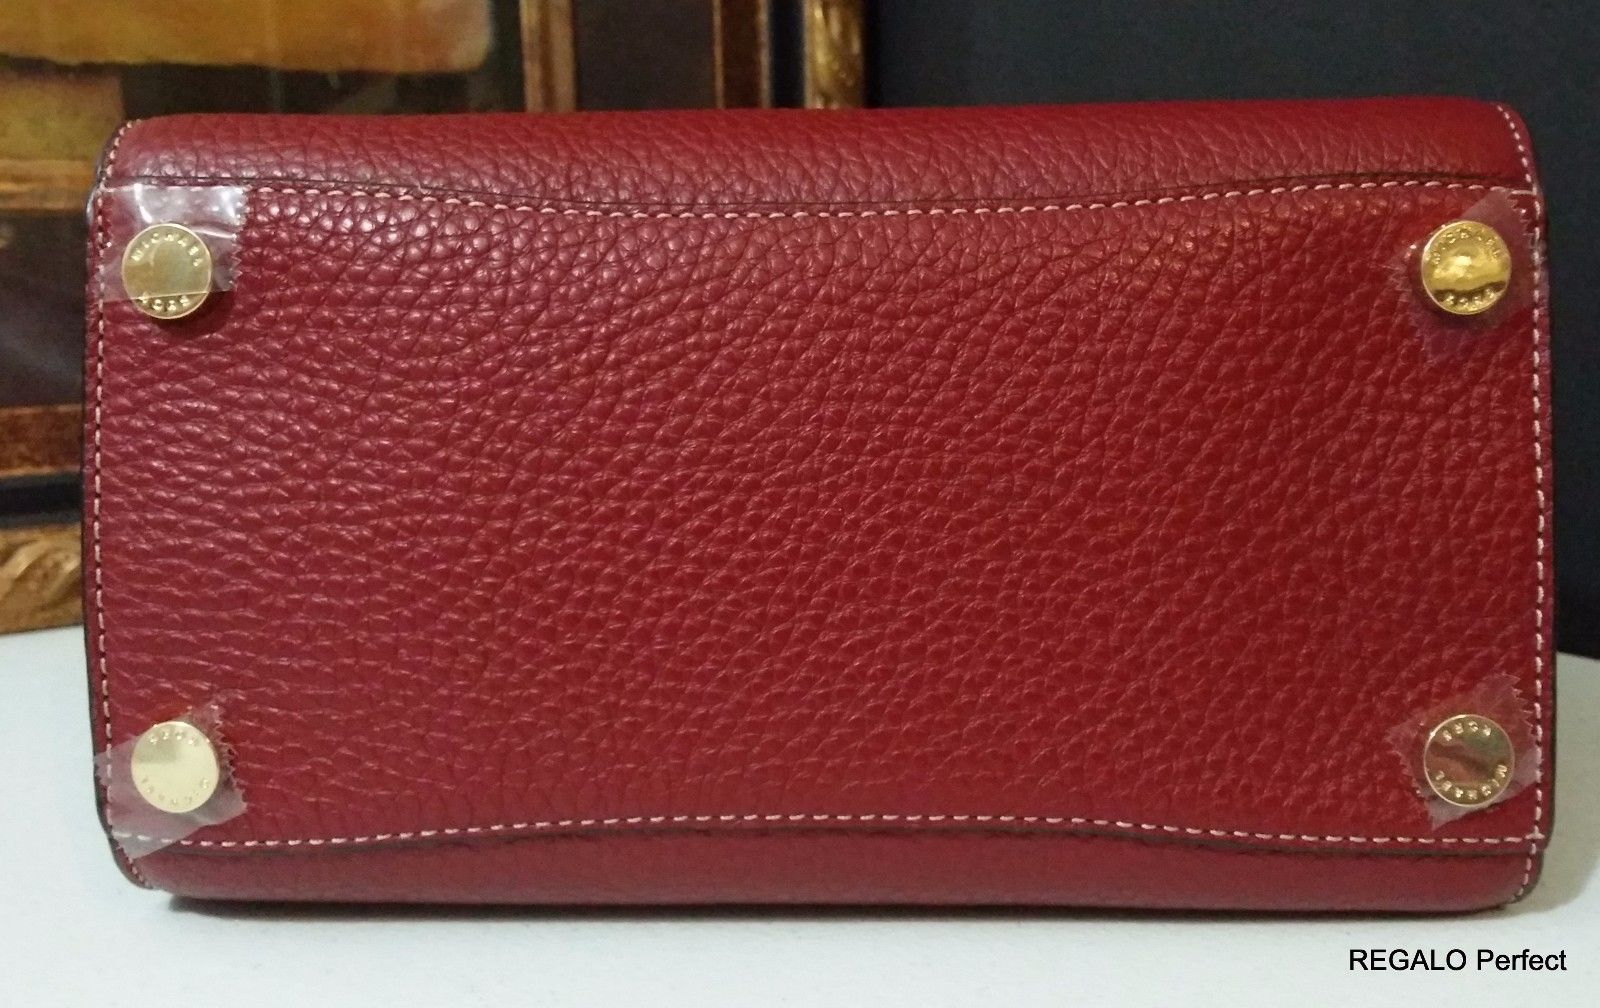 NWT Michael Kors Selby Medium Top Zip Leather Satchel Cherry 30H5GEYS2L $358